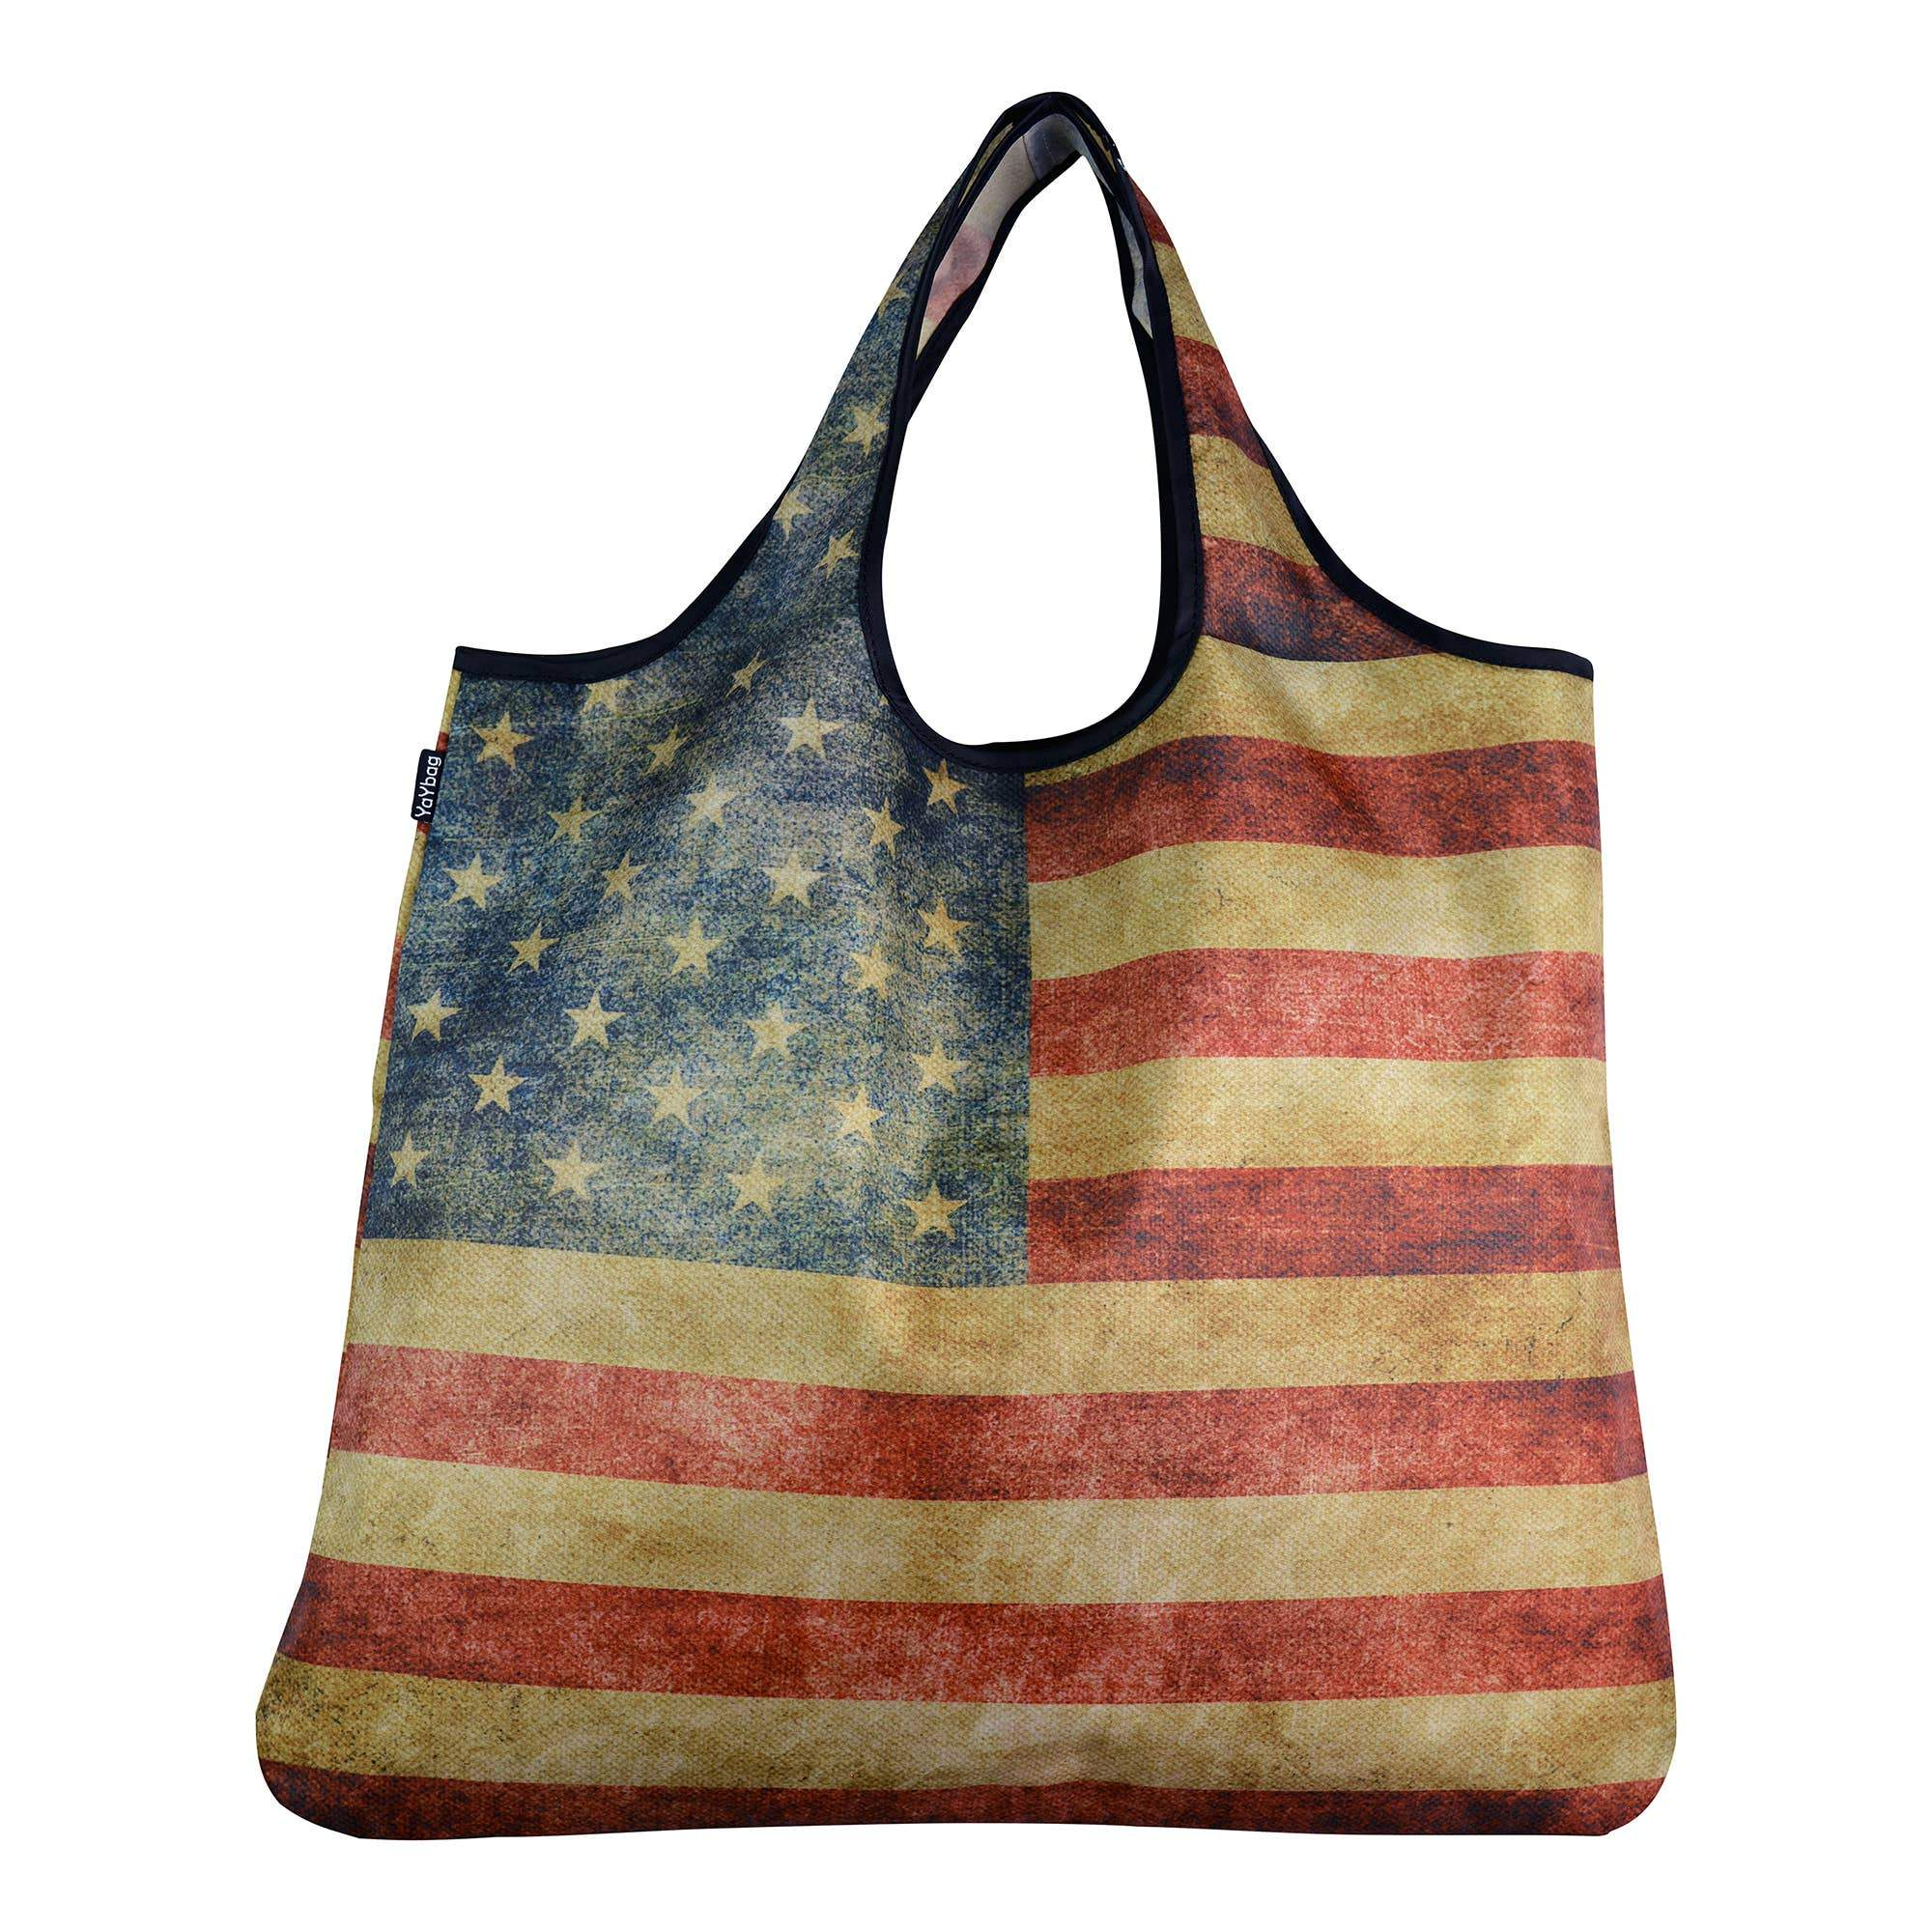 Buy YaYbag ORIGINAL - Retro American Flag from Walking Pants Curiosities, the Most un-General Gift Store in Downtown Memphis, Tennessee!